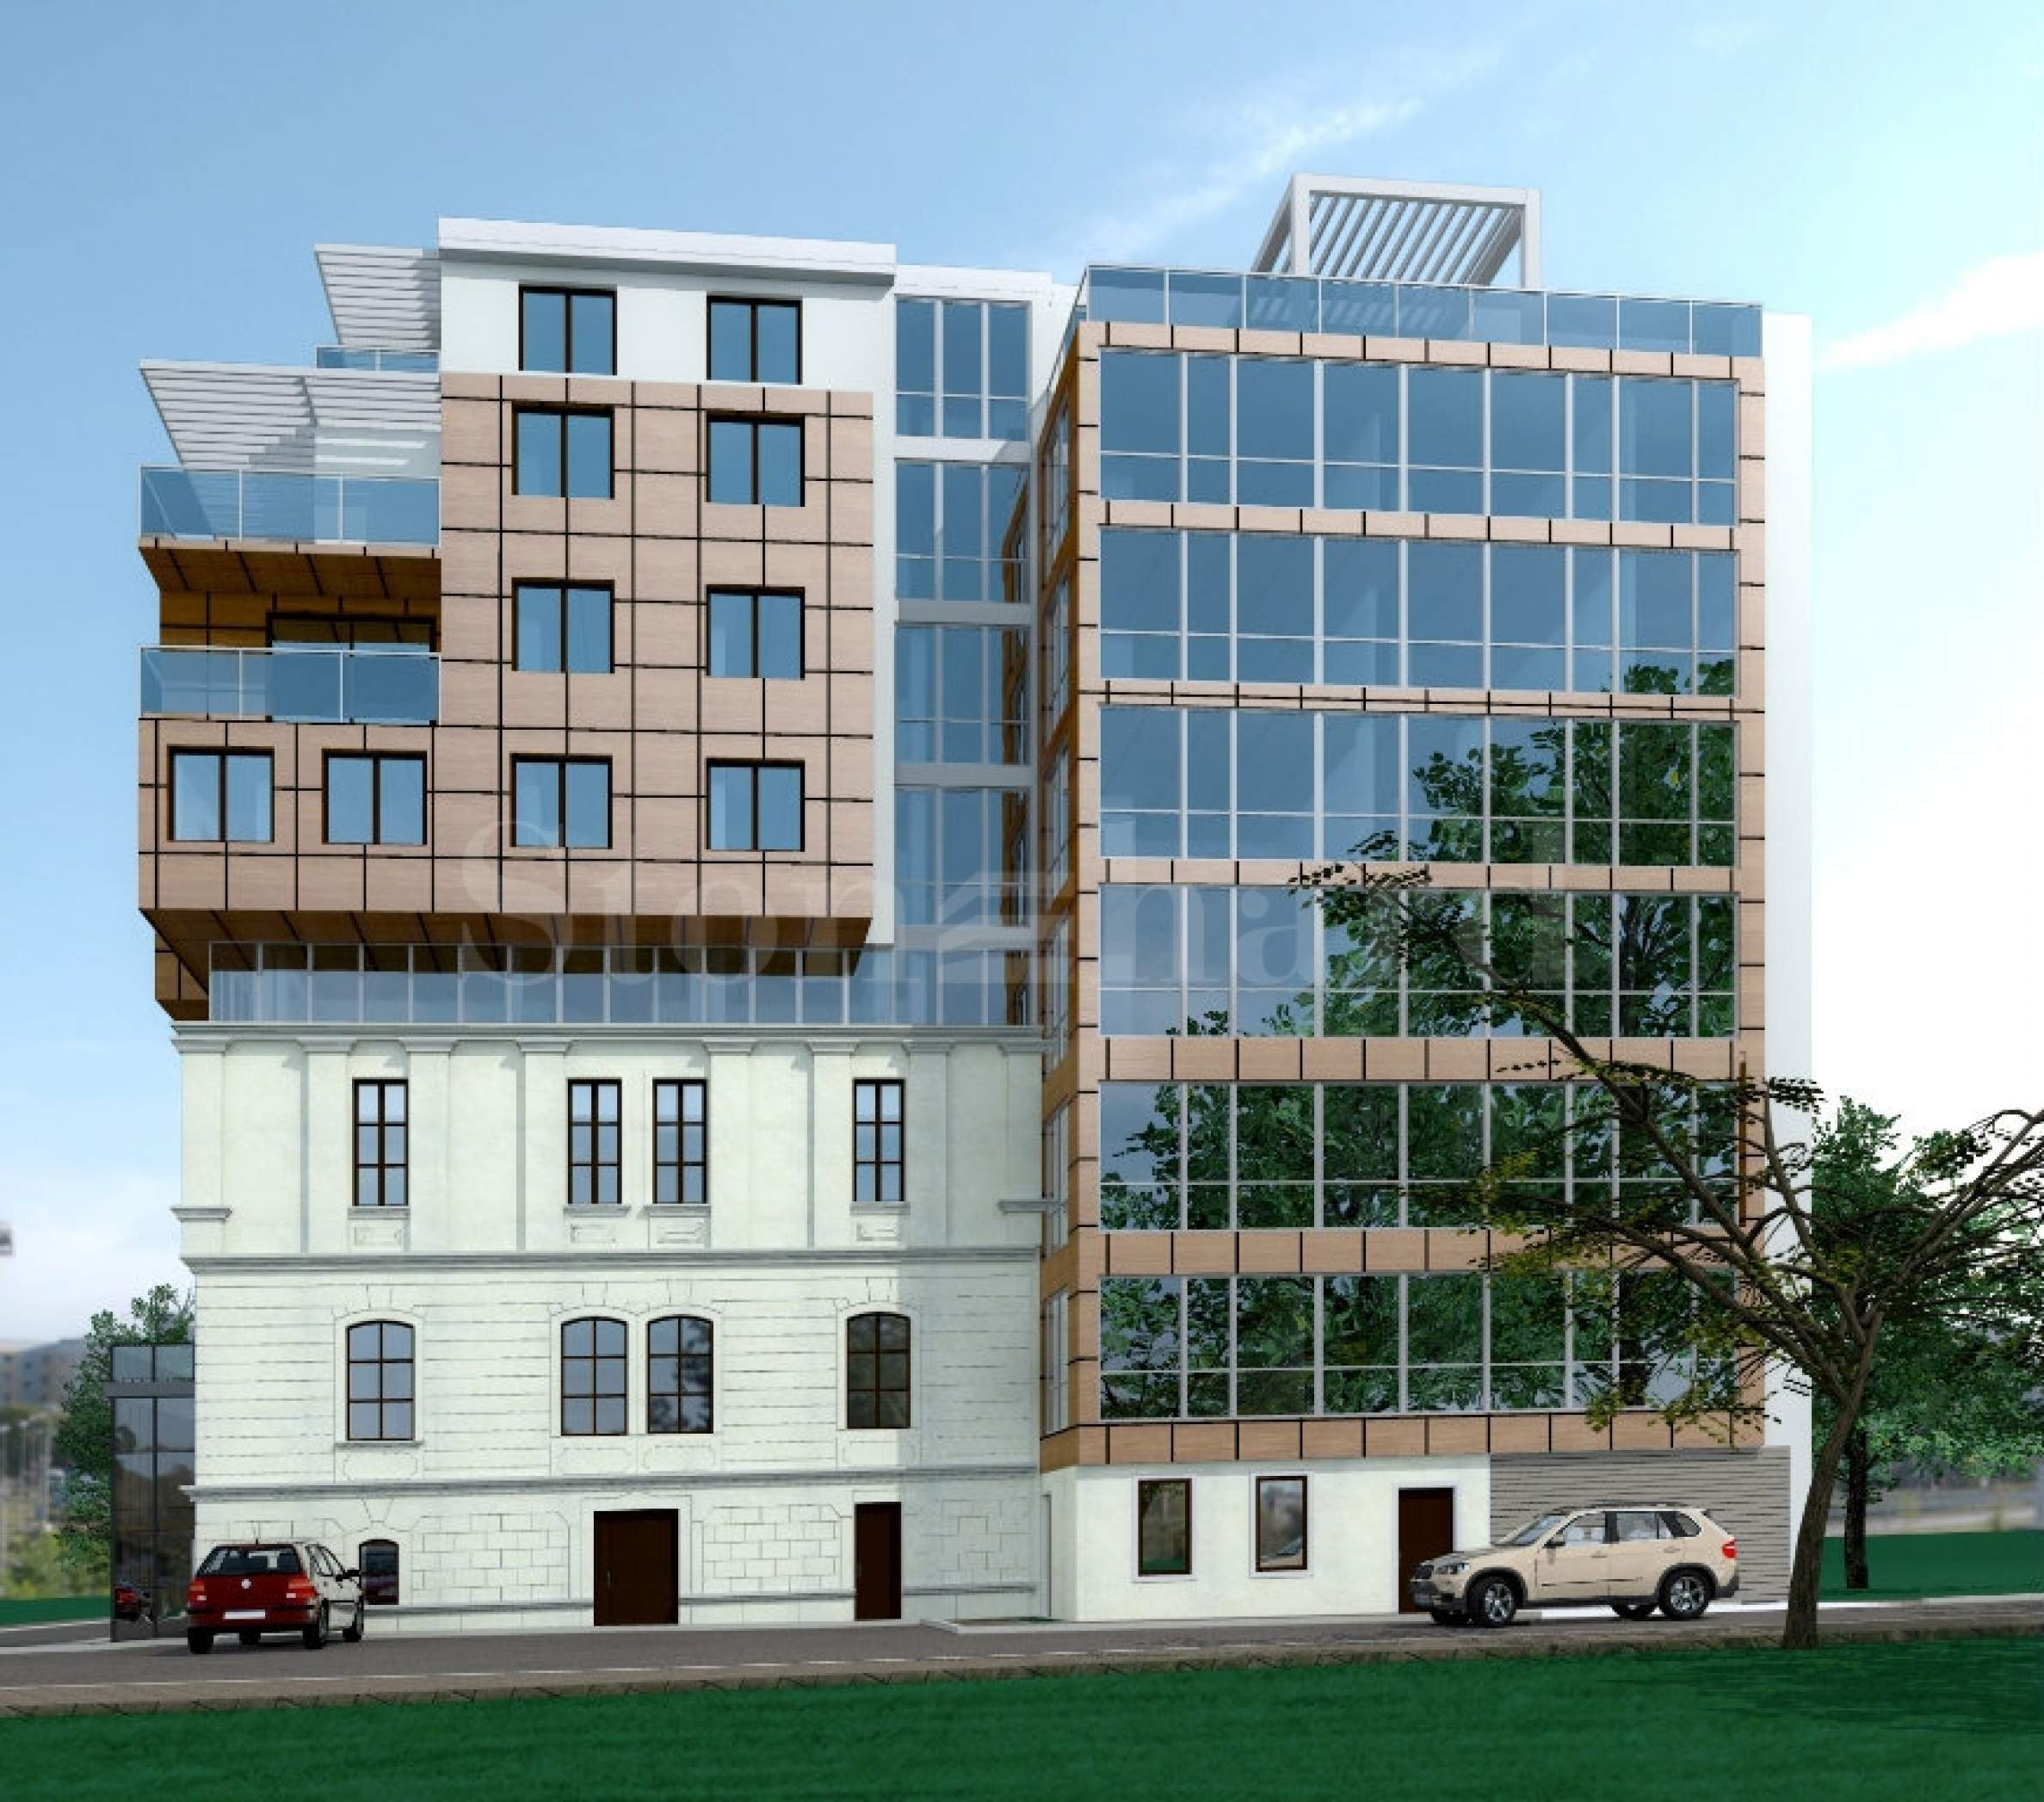 Apartments in a mixed use building in the city center1 - Stonehard